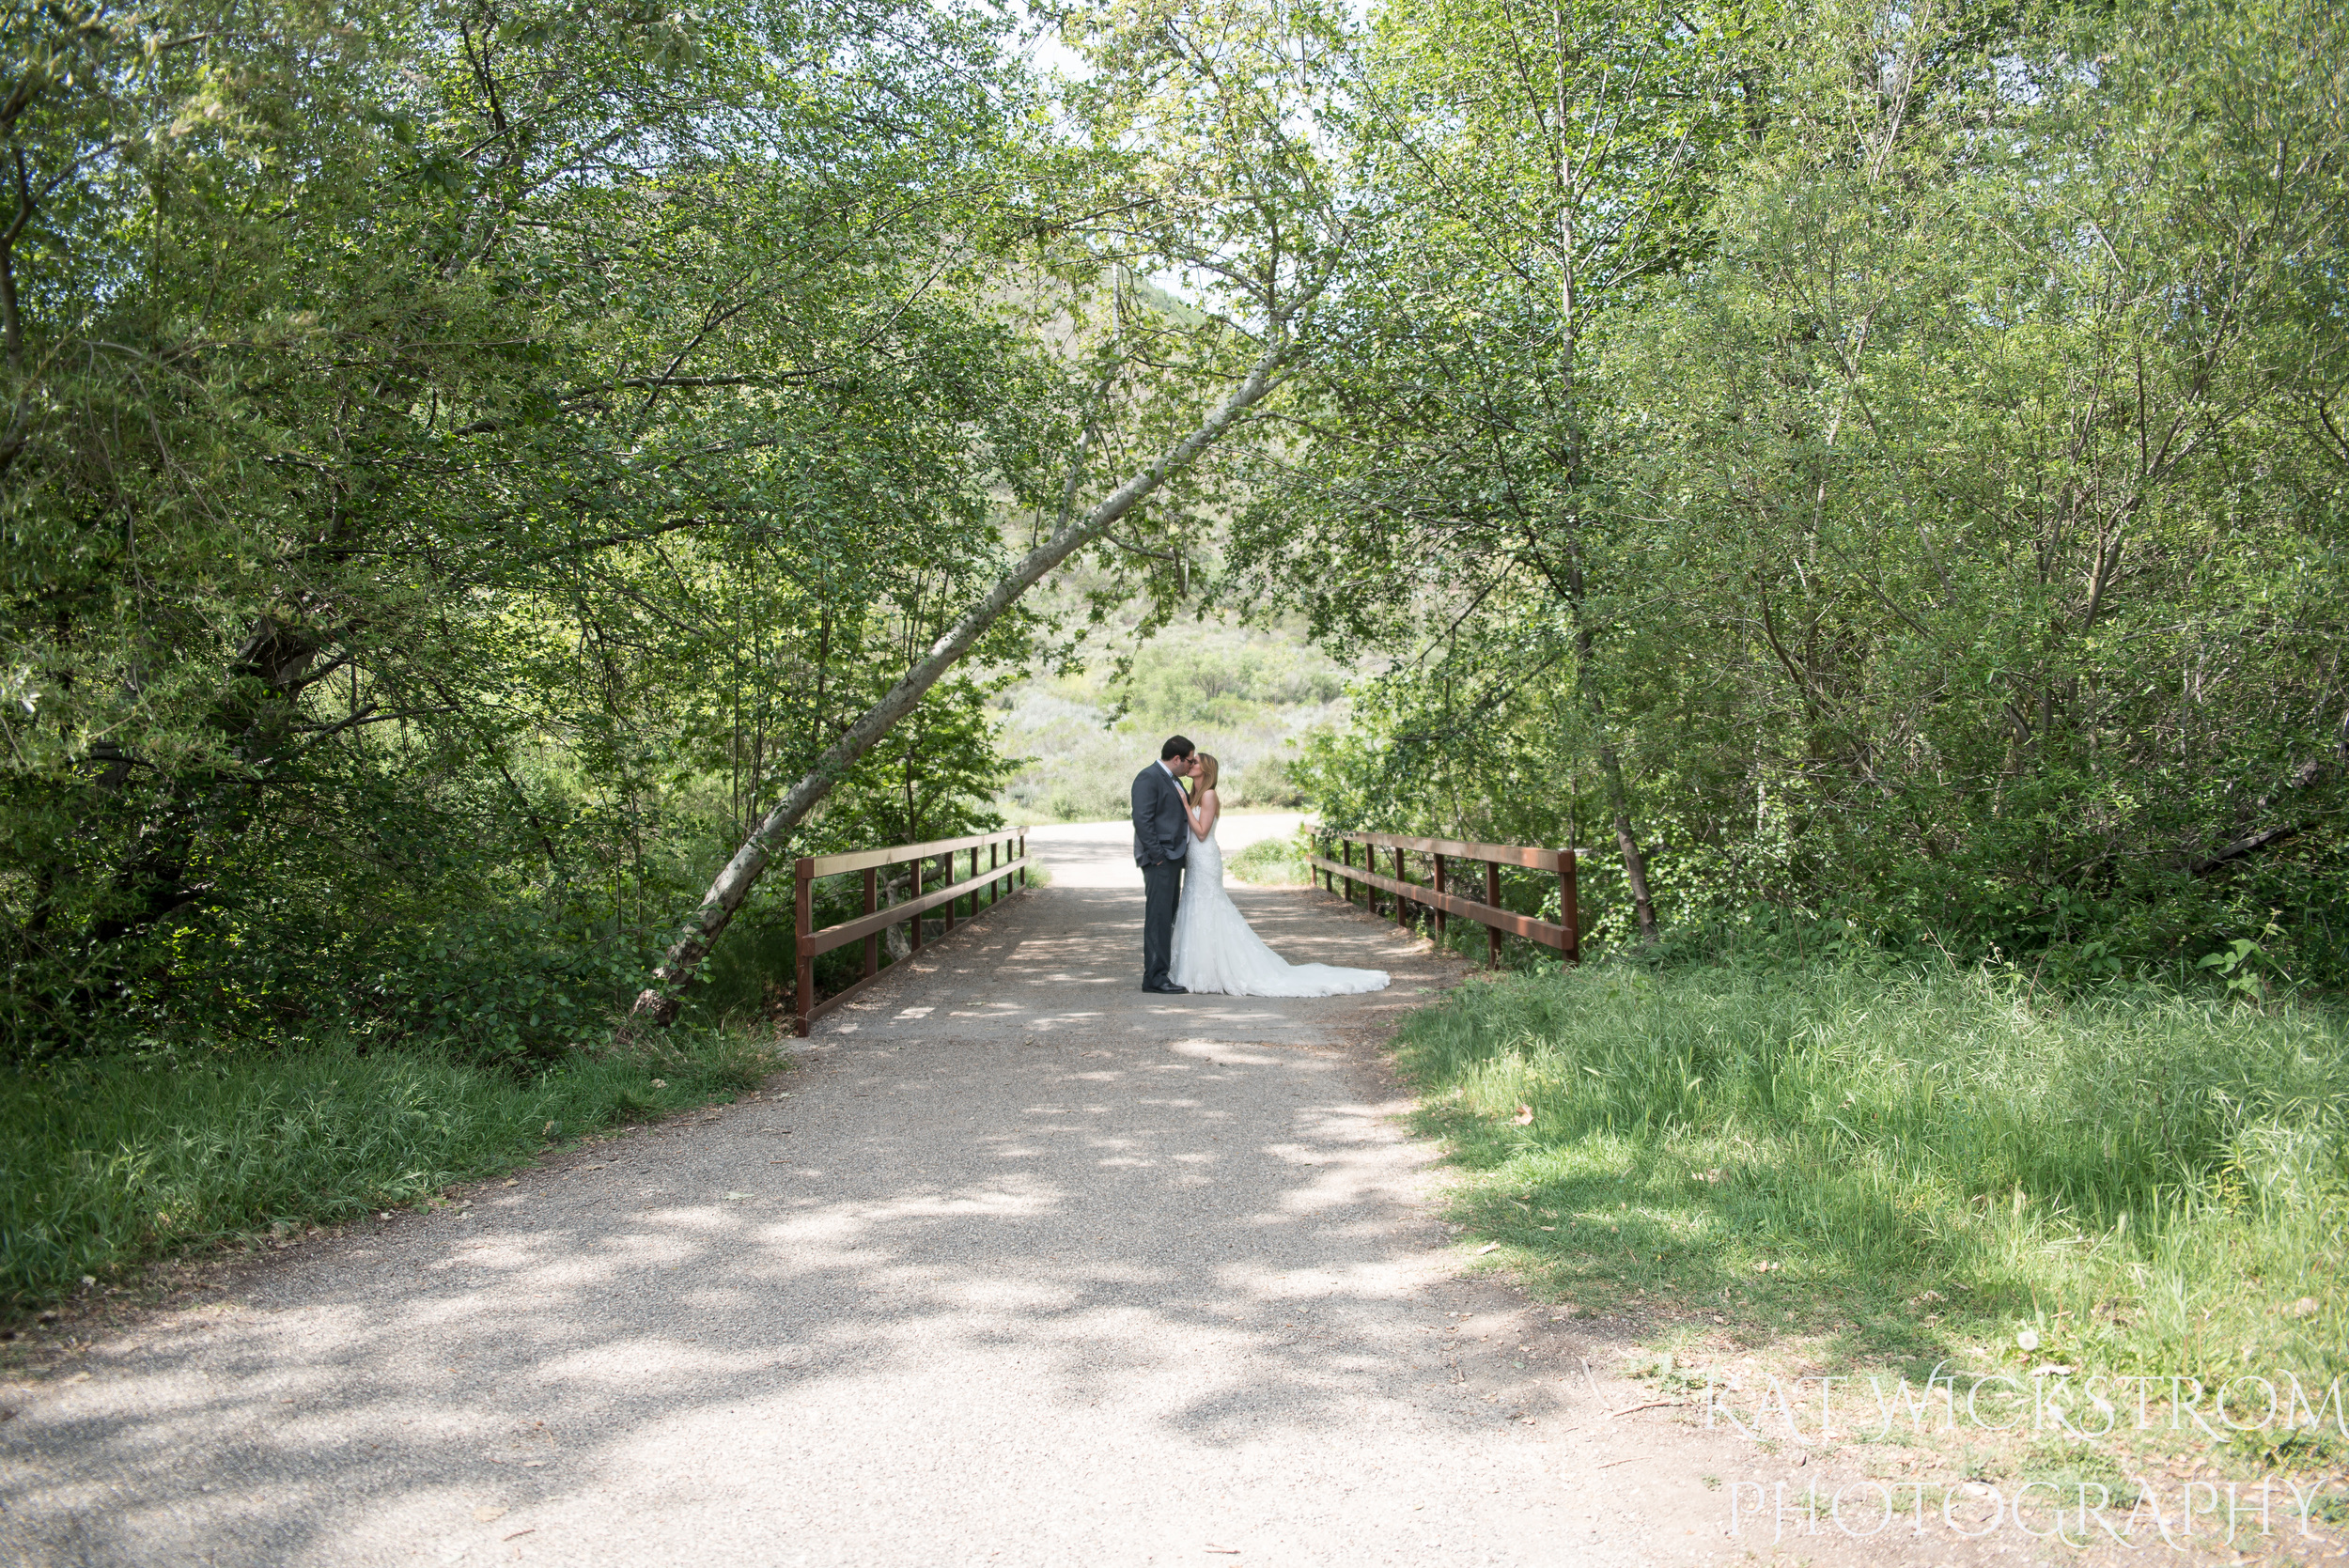 Solstice Canyon Malibu Wedding Portrait Bride and Groom Romantic Rustic Natural Photo